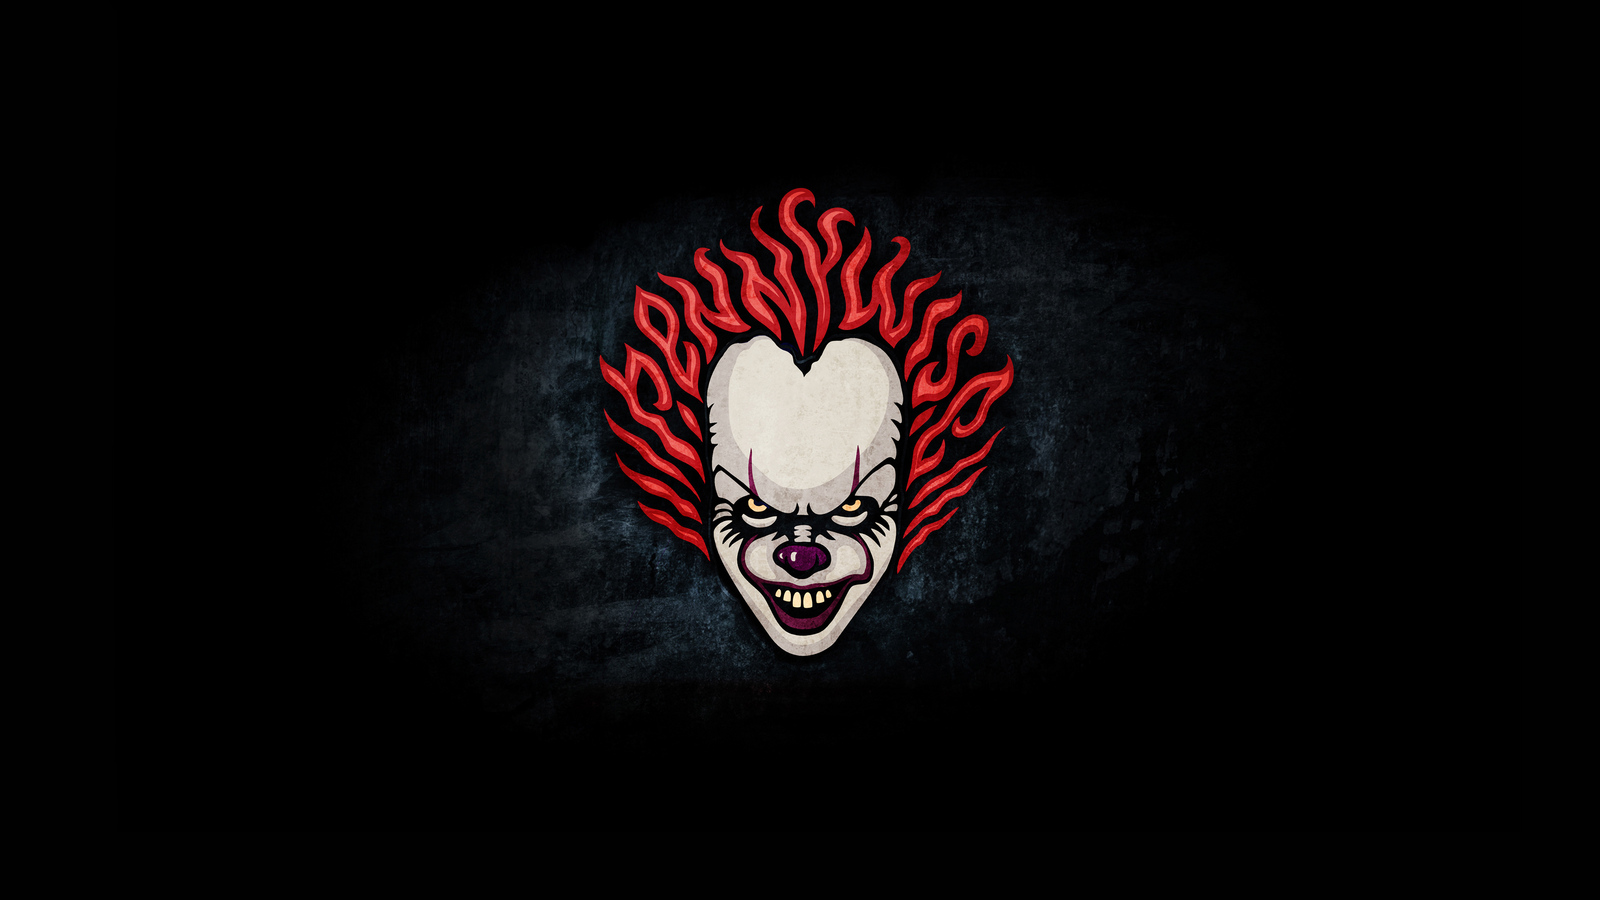 1600x900 Pennywise 4k 1600x900 Resolution HD 4k Wallpapers ...